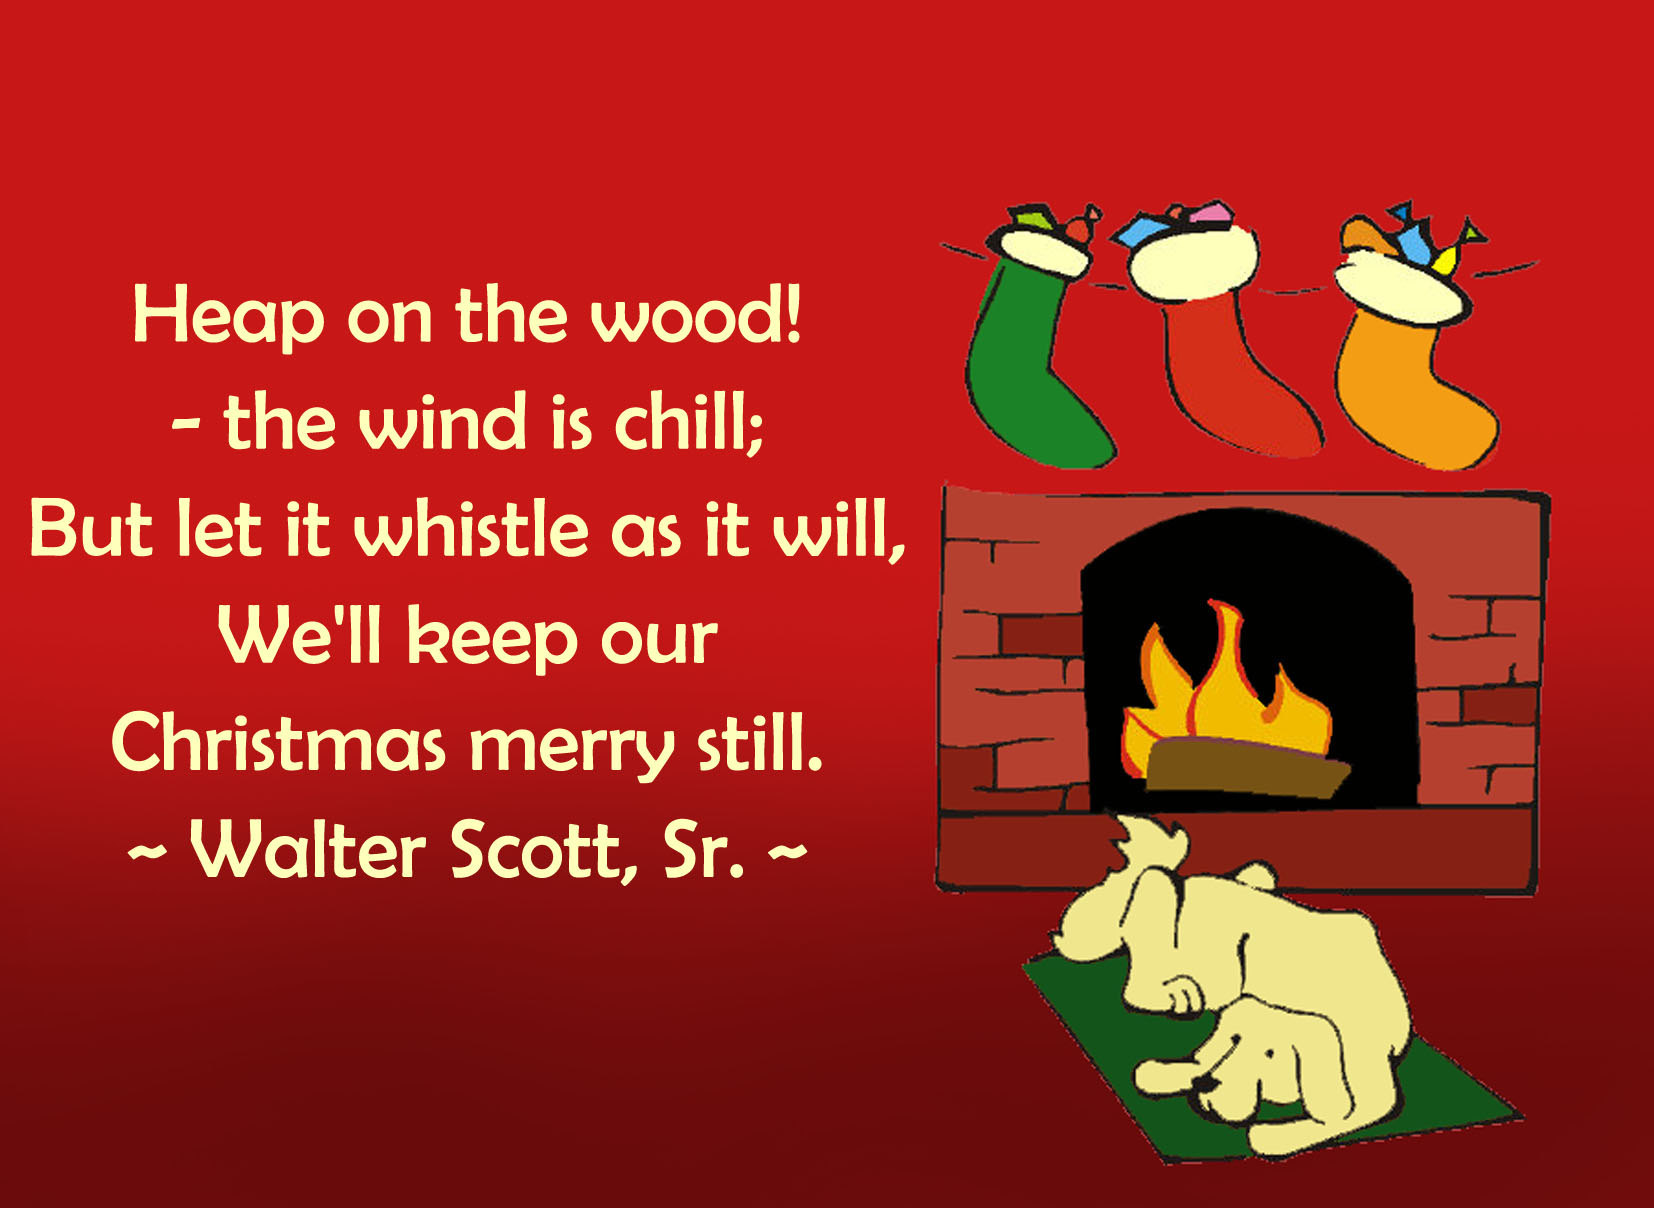 Chrismas card with dog in front of fireplace and a quote by Walter Scott, Sr.